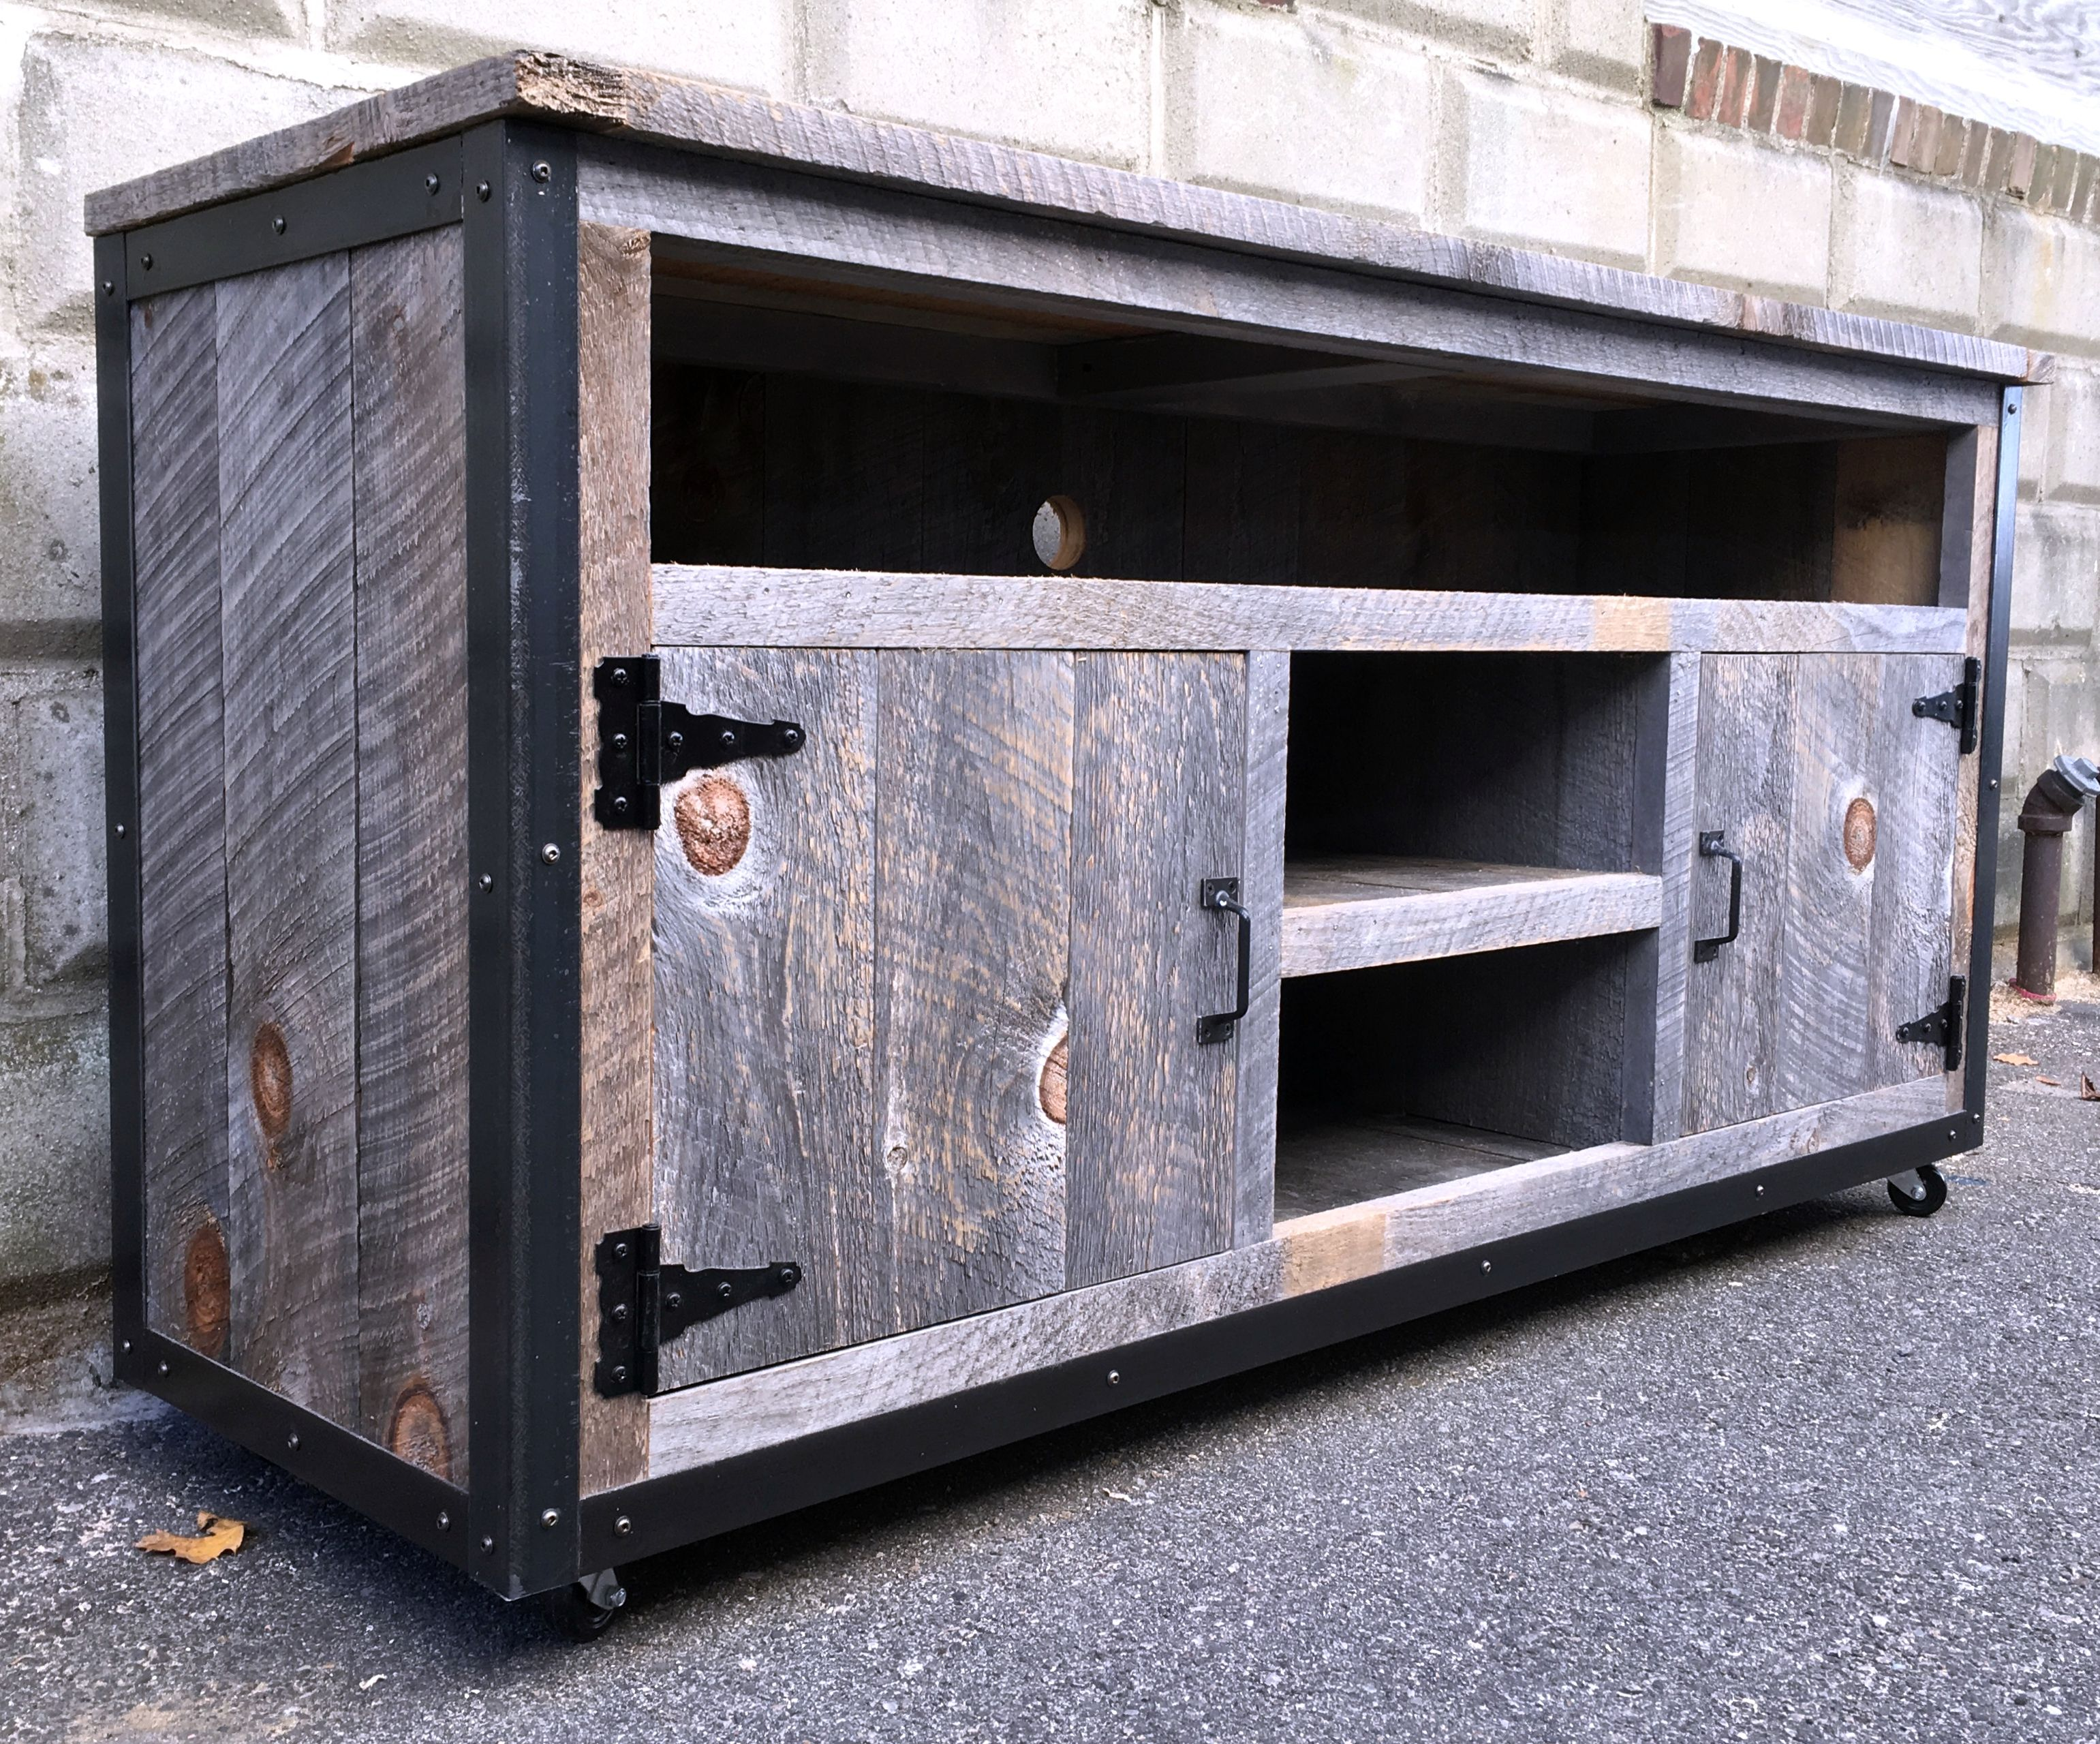 hand made rustic industrial weathered barn board entertainment center tv stand reclaimed wood 62. Black Bedroom Furniture Sets. Home Design Ideas